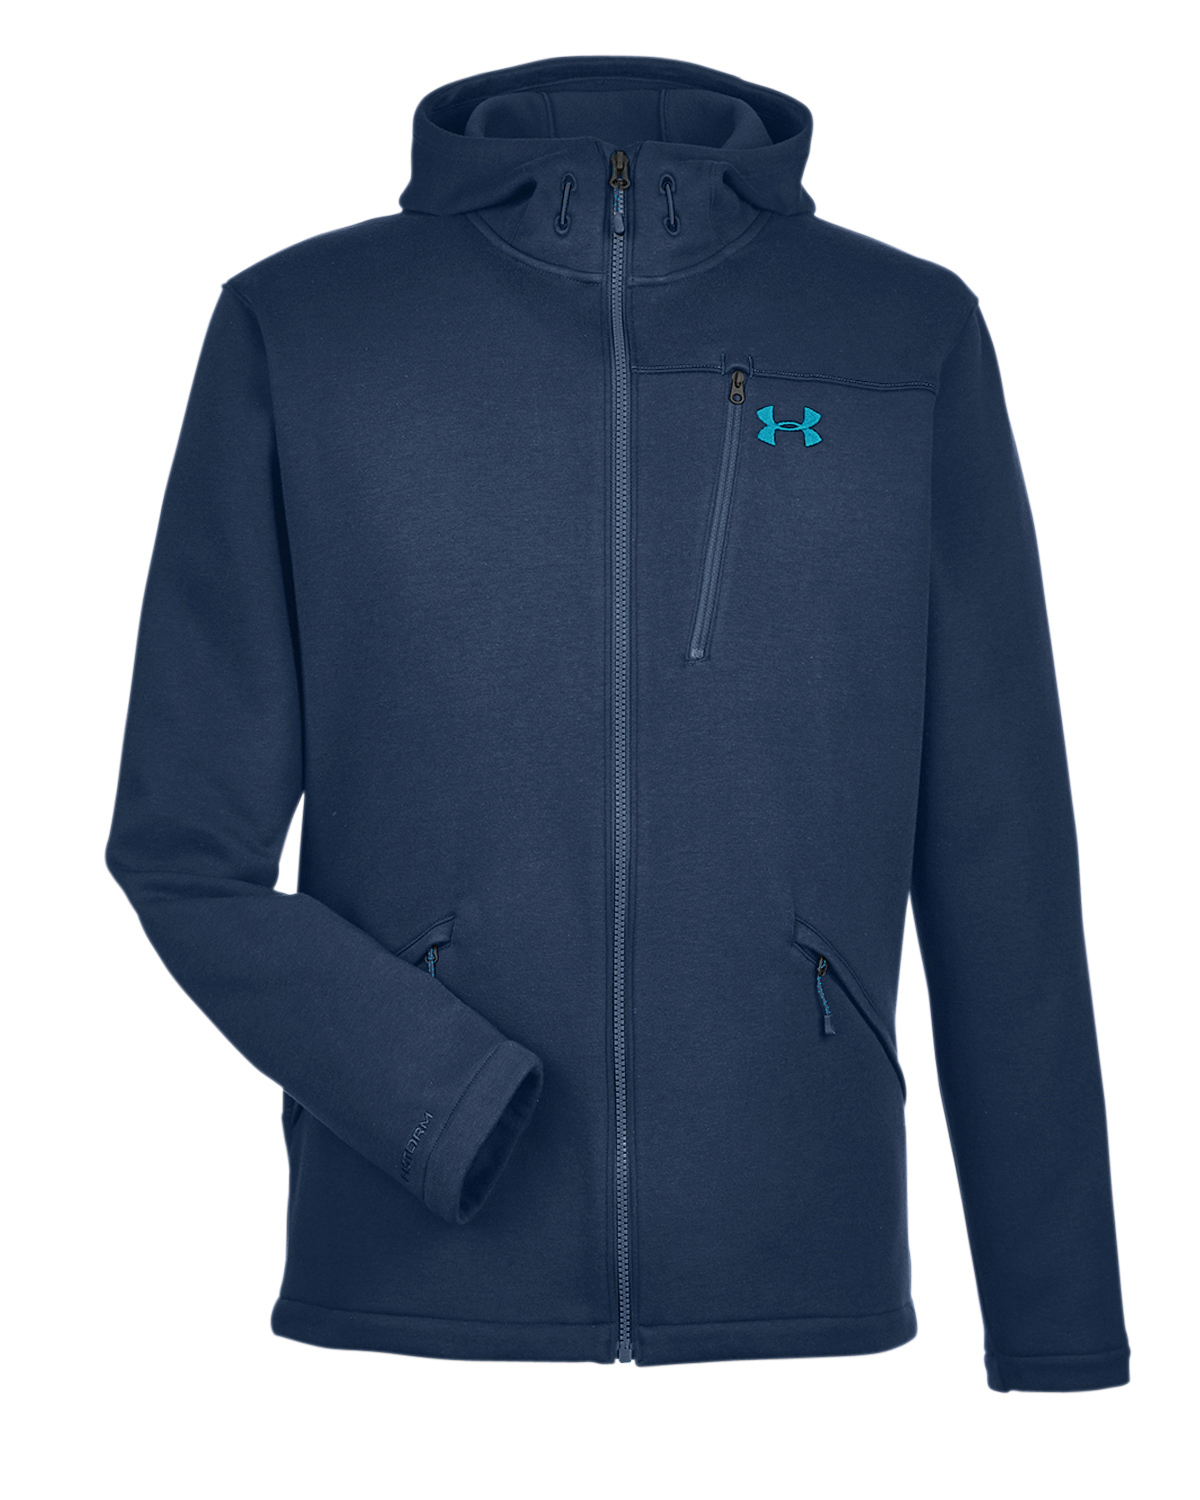 Under Armour 1319382 - Men's Seeker Hoodie